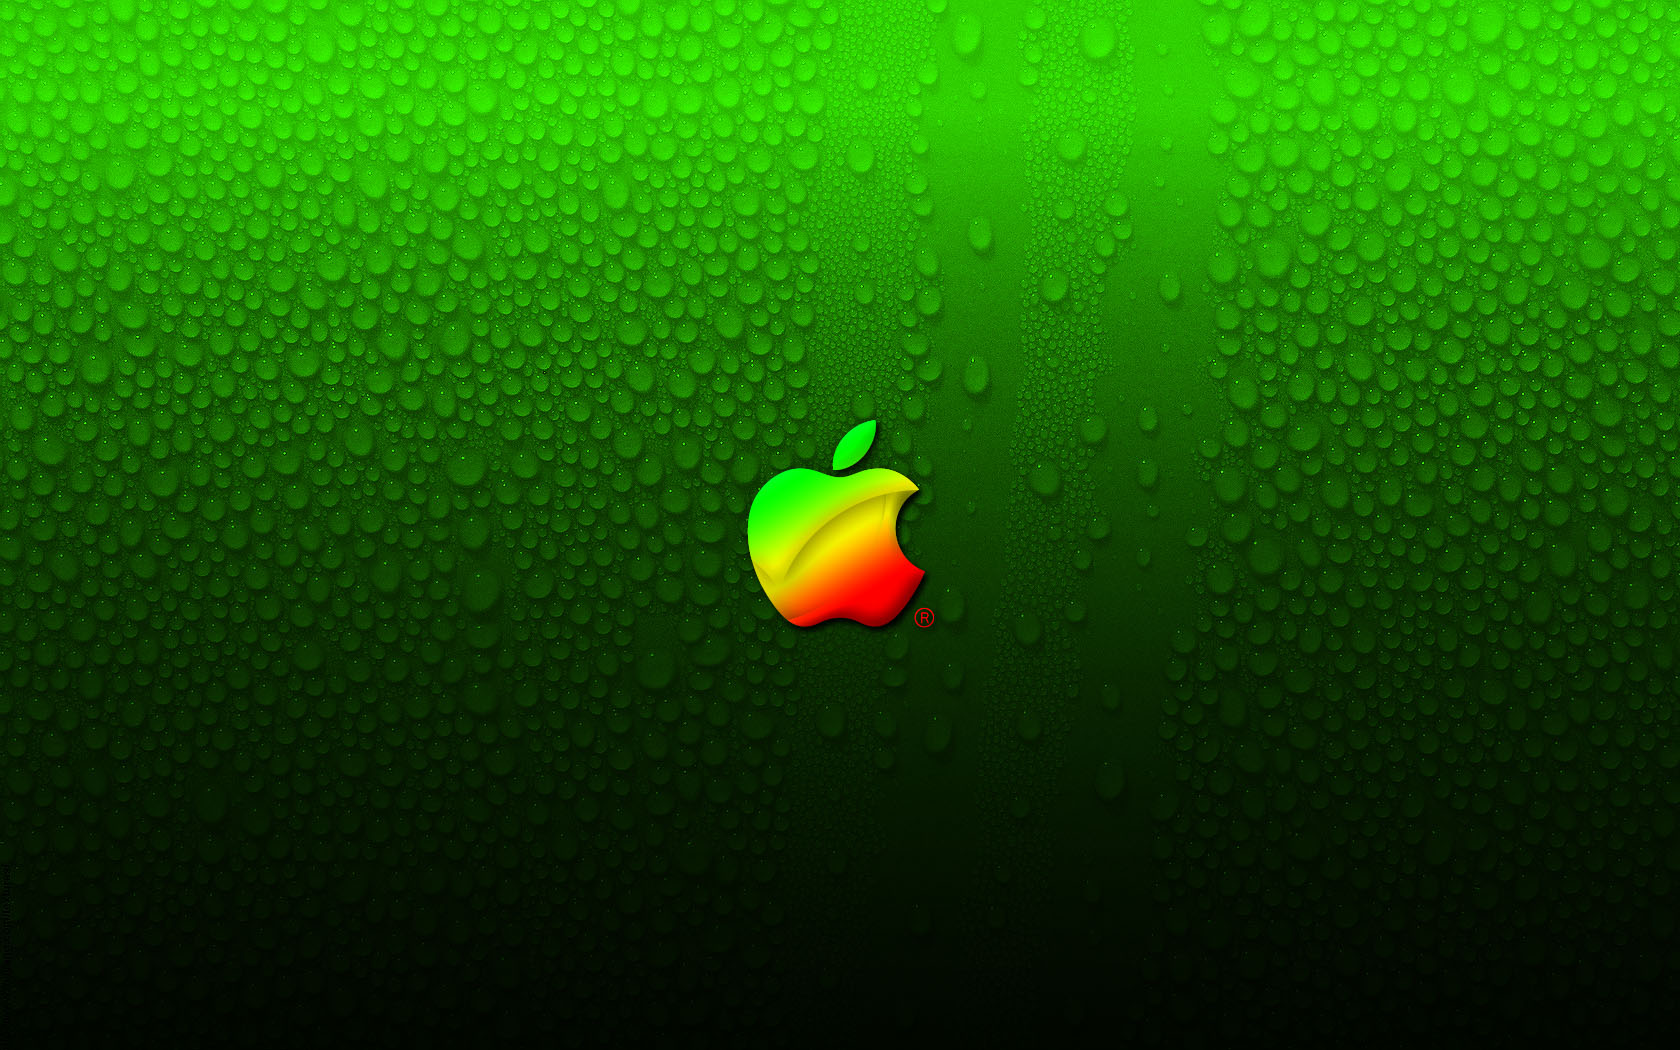 Best Hd Apple Wallpapers Apple Wallpapers Desktop Backgrounds 1680x1050